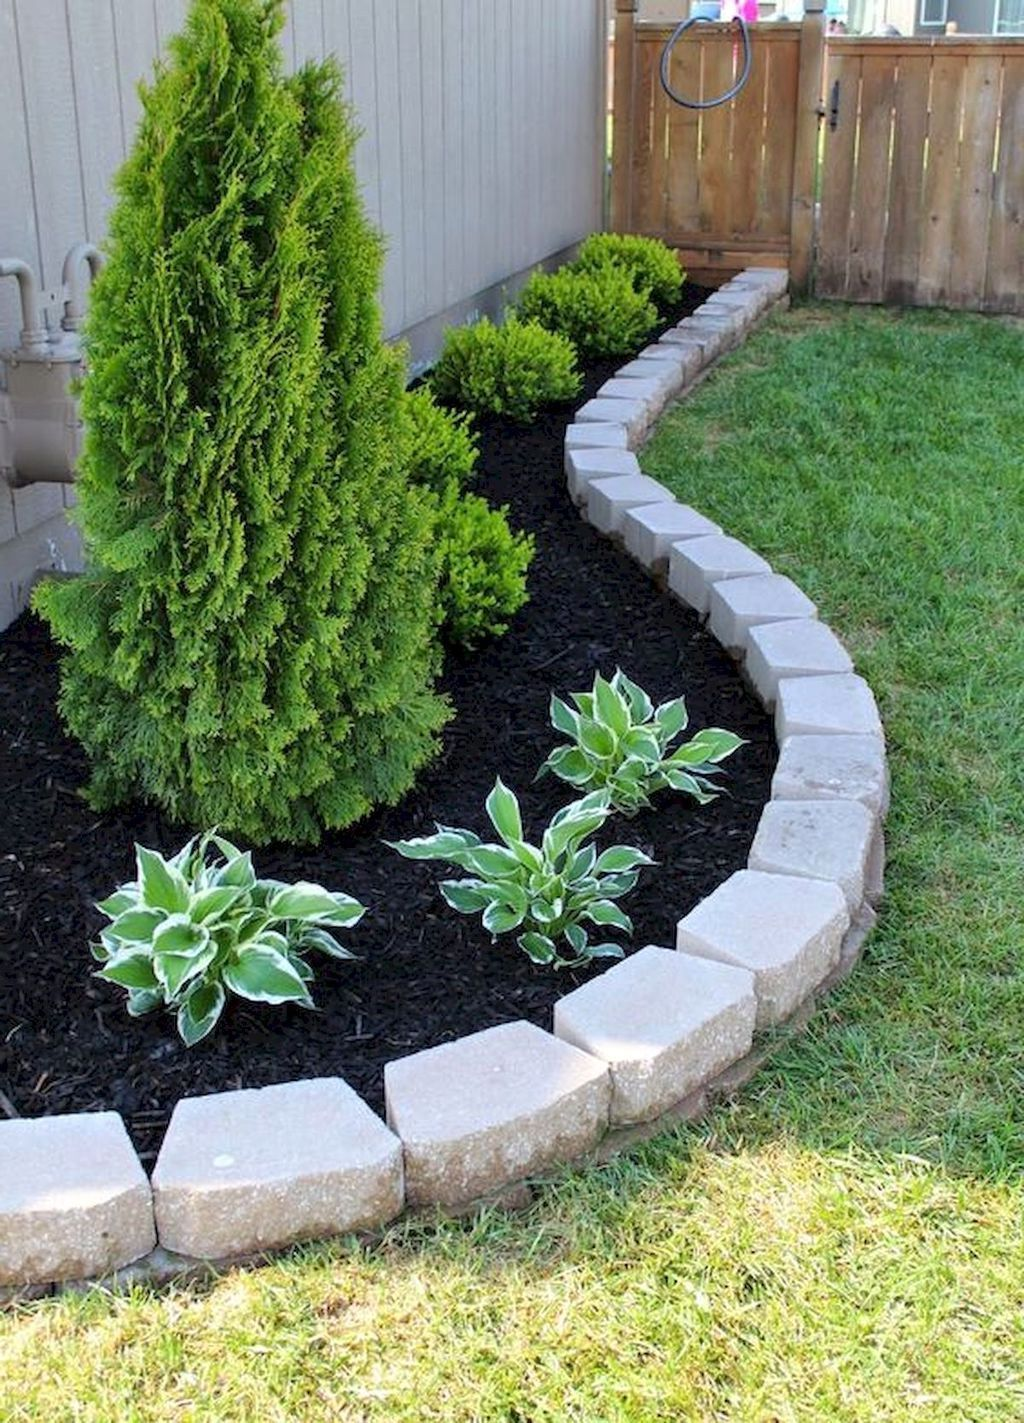 40 Modern Front Yard Landscaping Ideas On A Budget 36 Best Home Design Ideas Diy Landscaping Front House Landscaping Front Garden Landscape